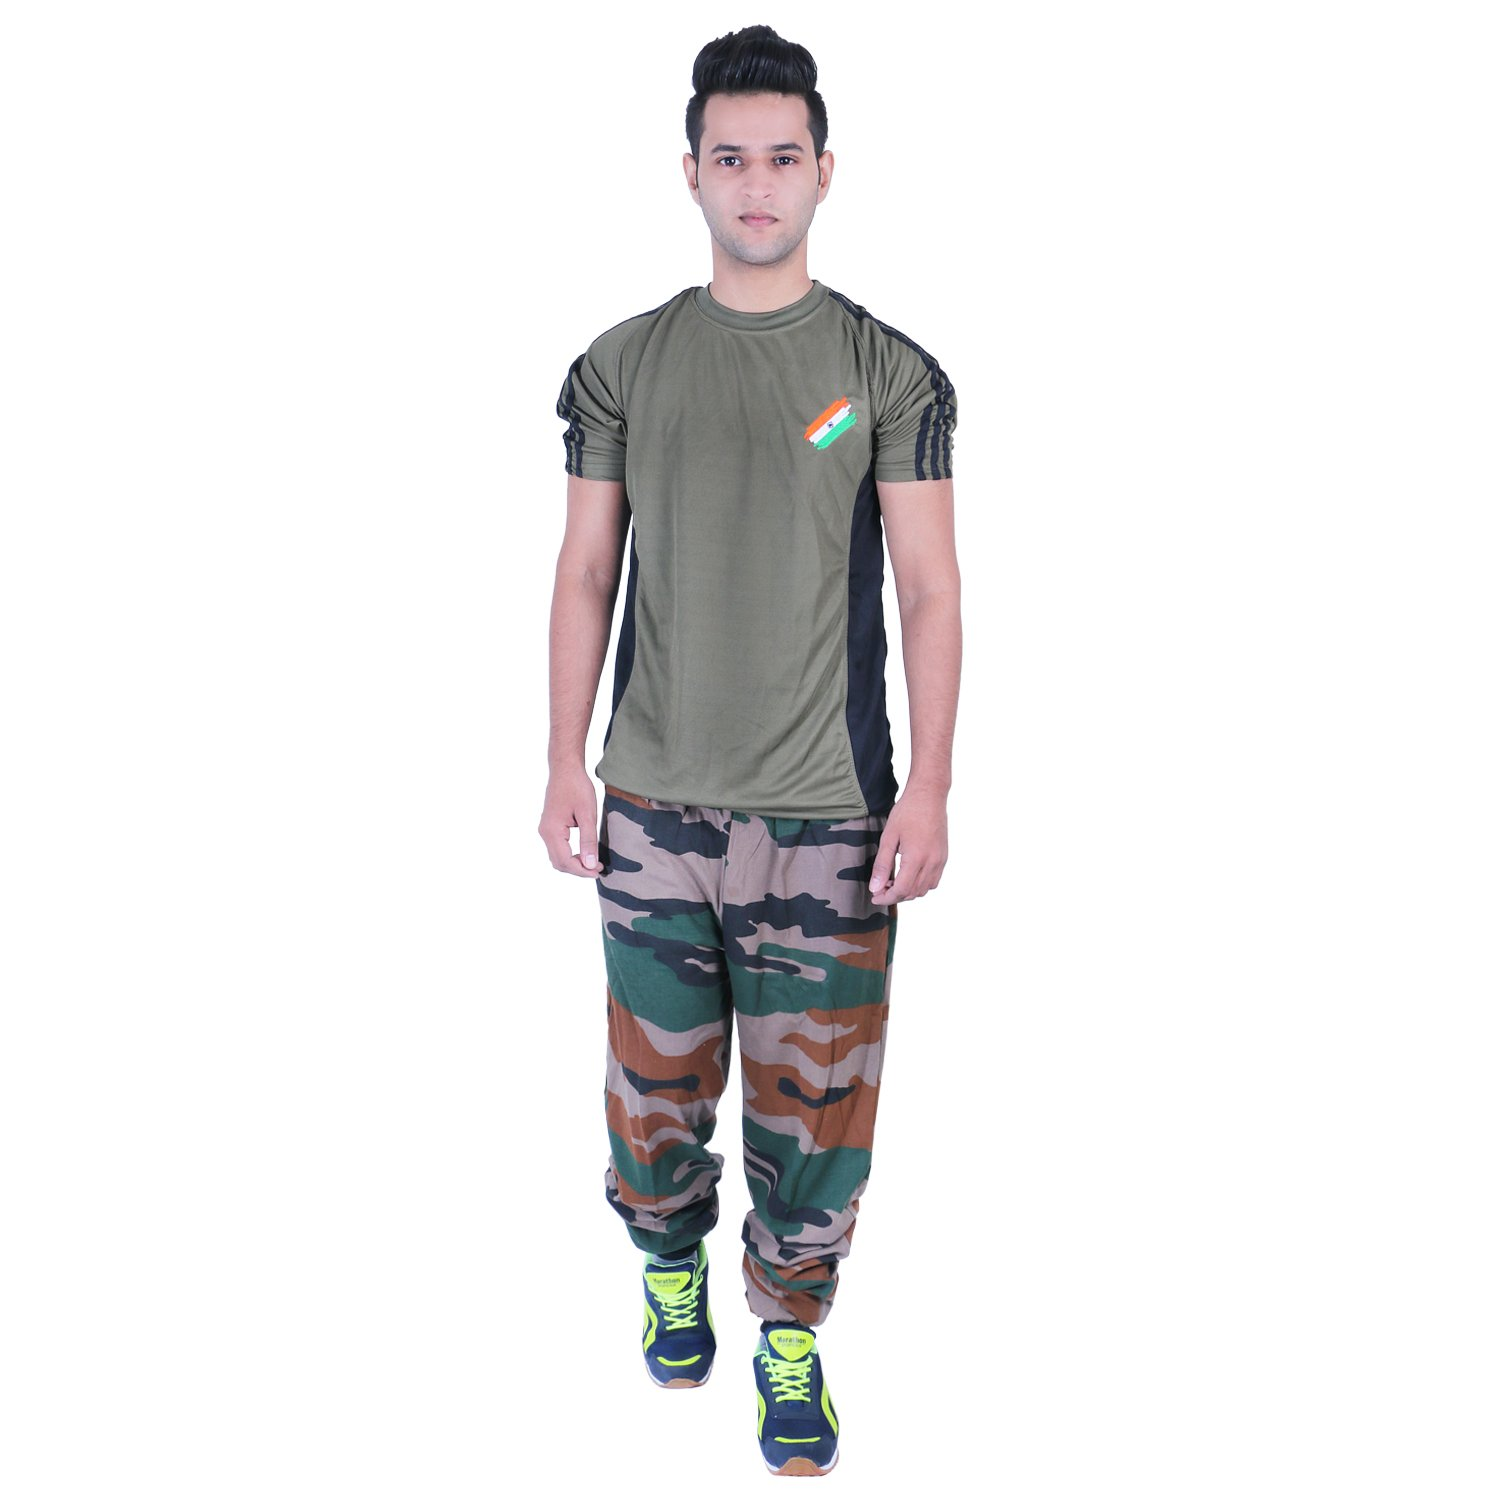 f0842d226c482 Army Print Flag T-Shirt Half Sleeves: Amazon.in: Clothing & Accessories